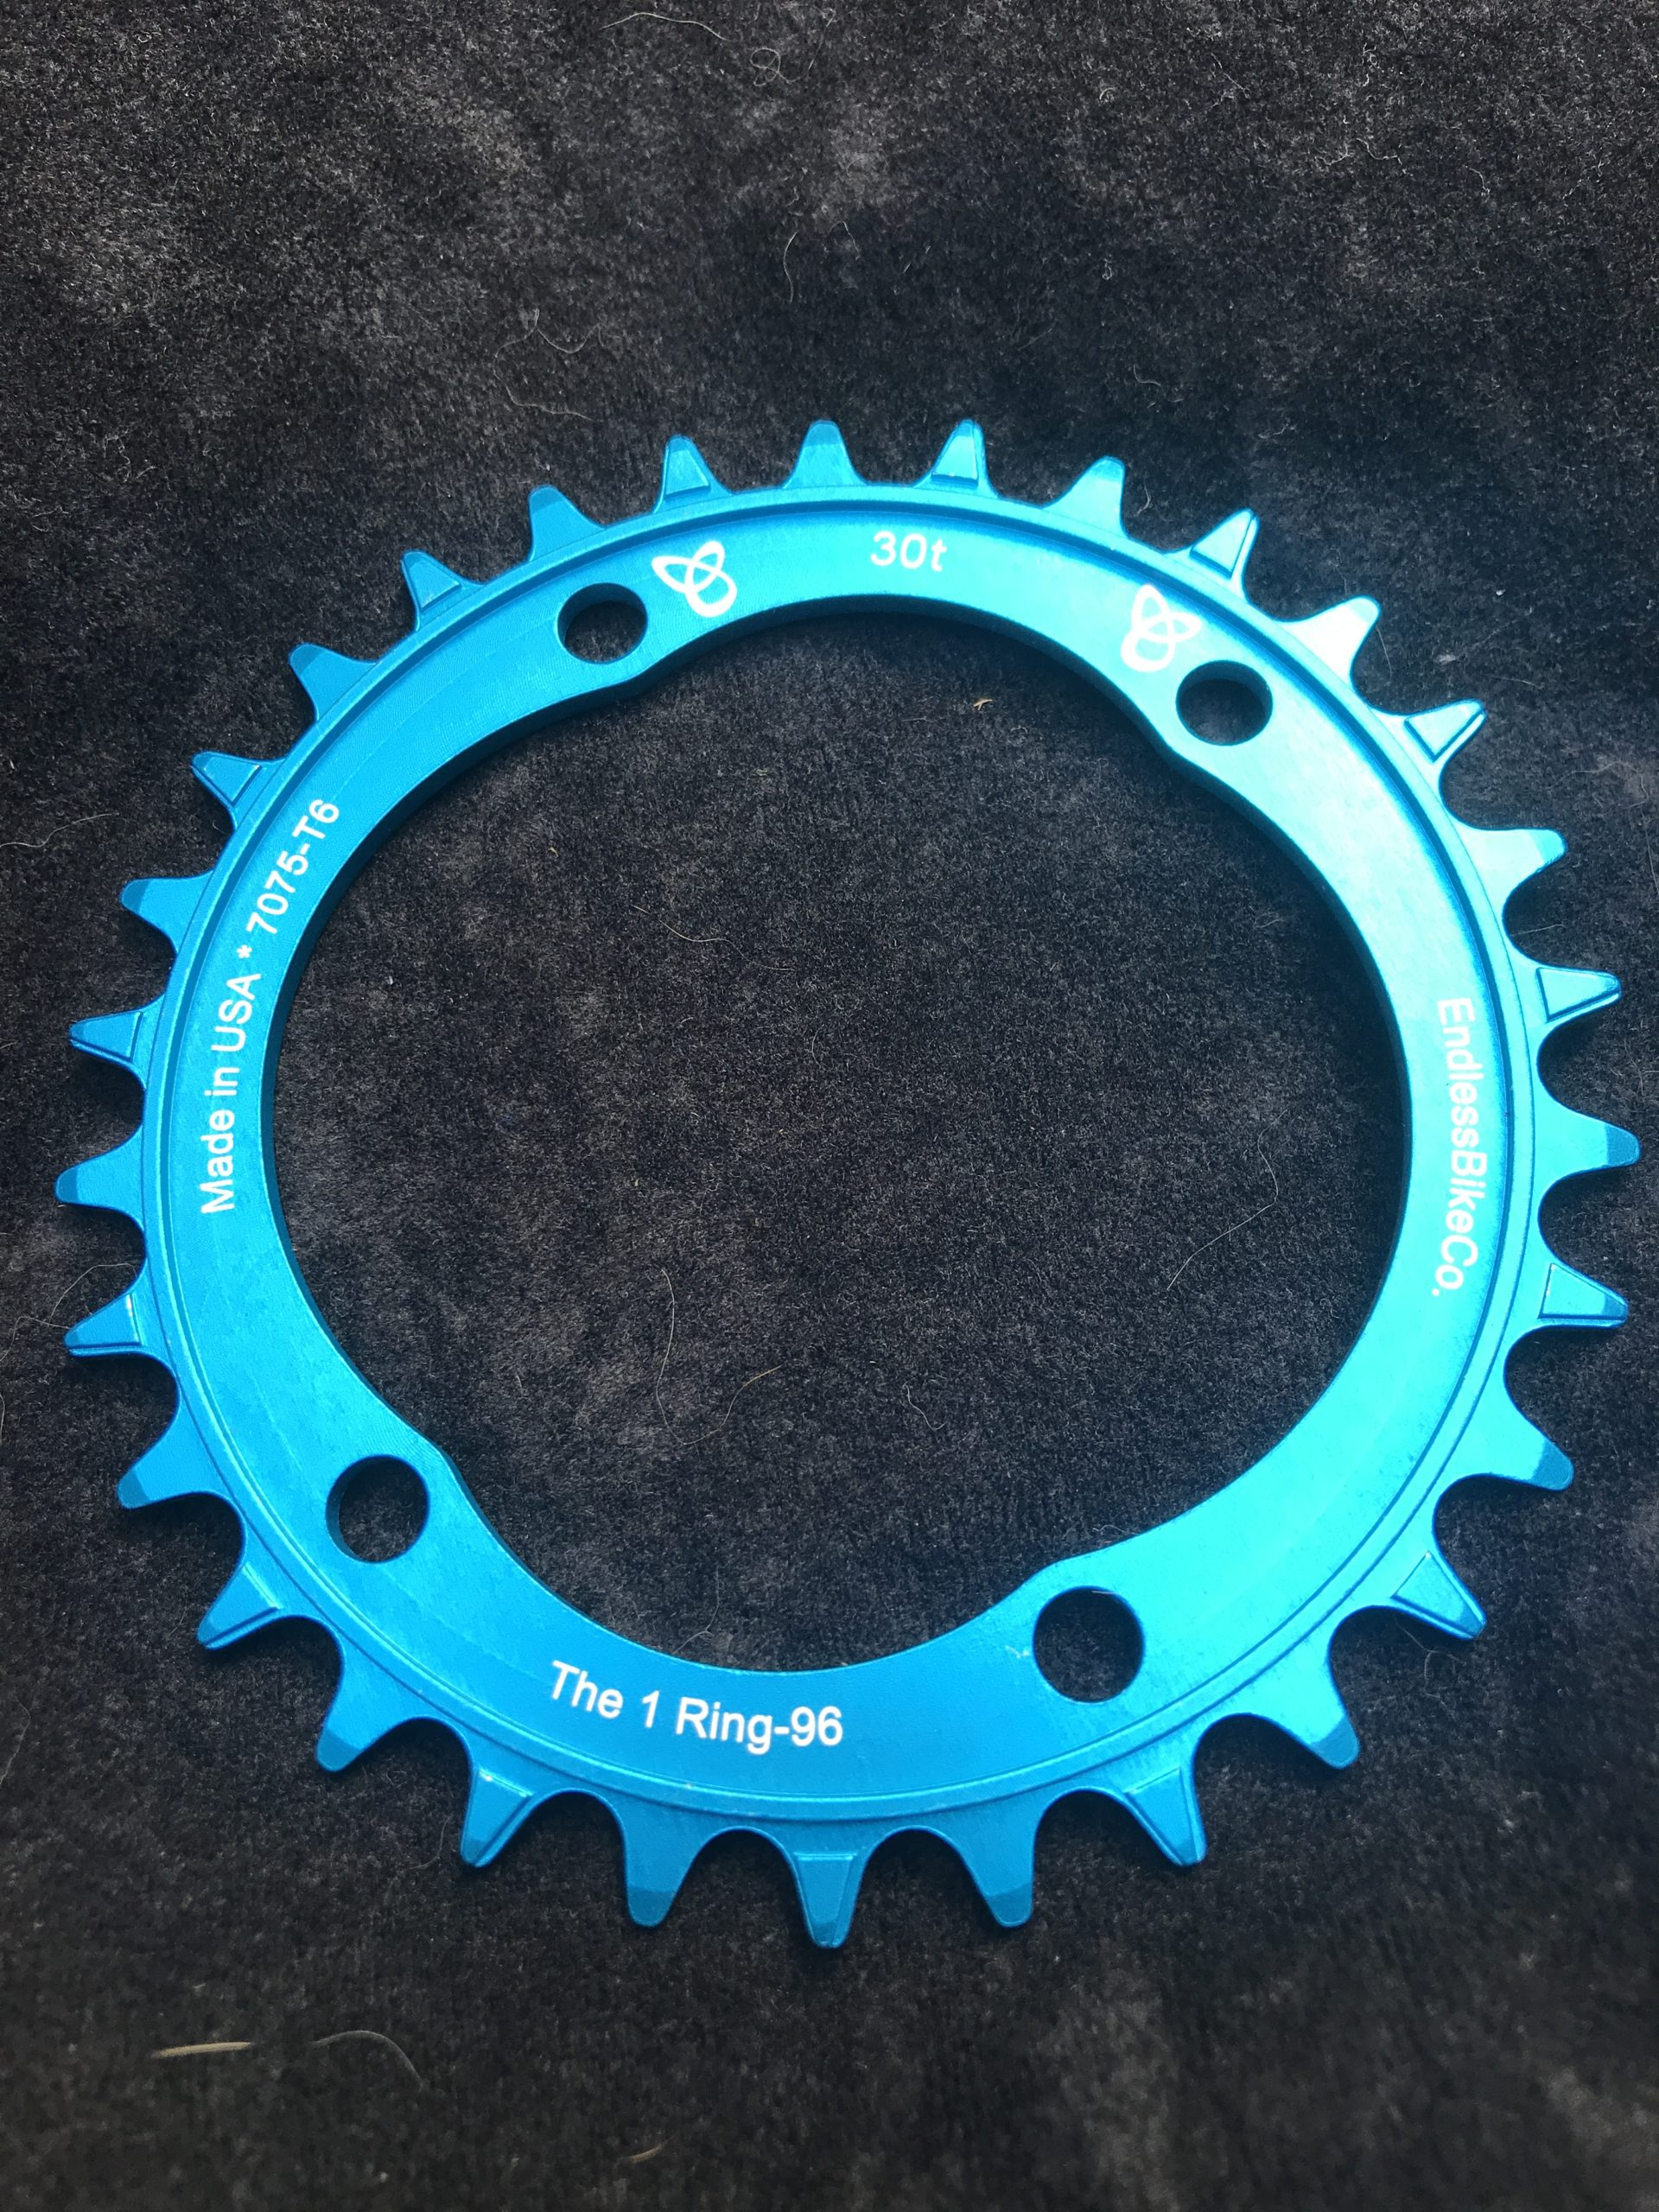 Shimano XT chainring 30t teal